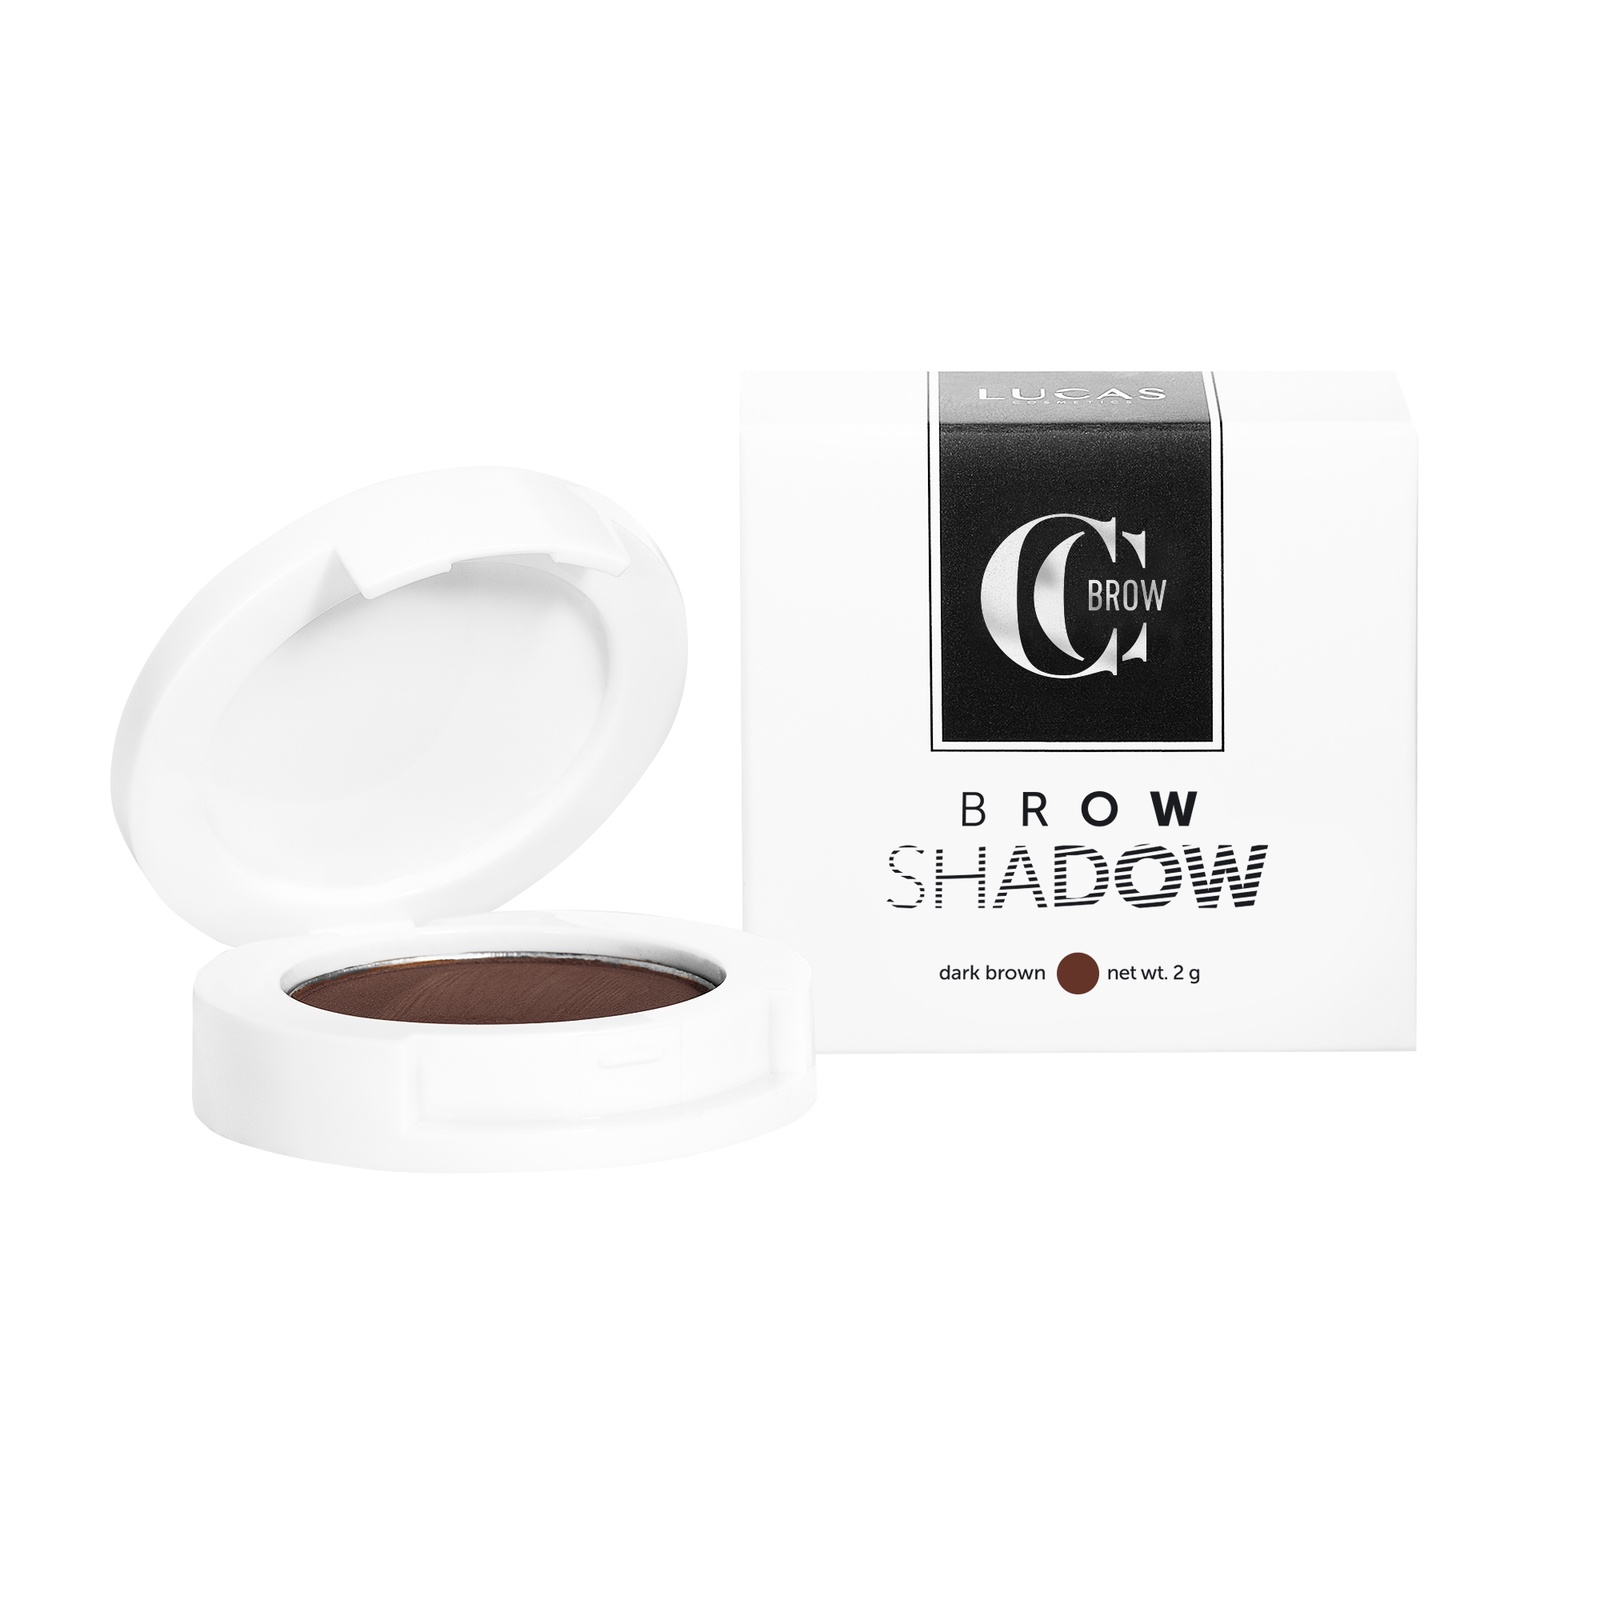 Тени для бровей Brow Shadow карандаш для бровей ardell mechanical brow pencil dark brown цвет dark brown variant hex name 533f3b